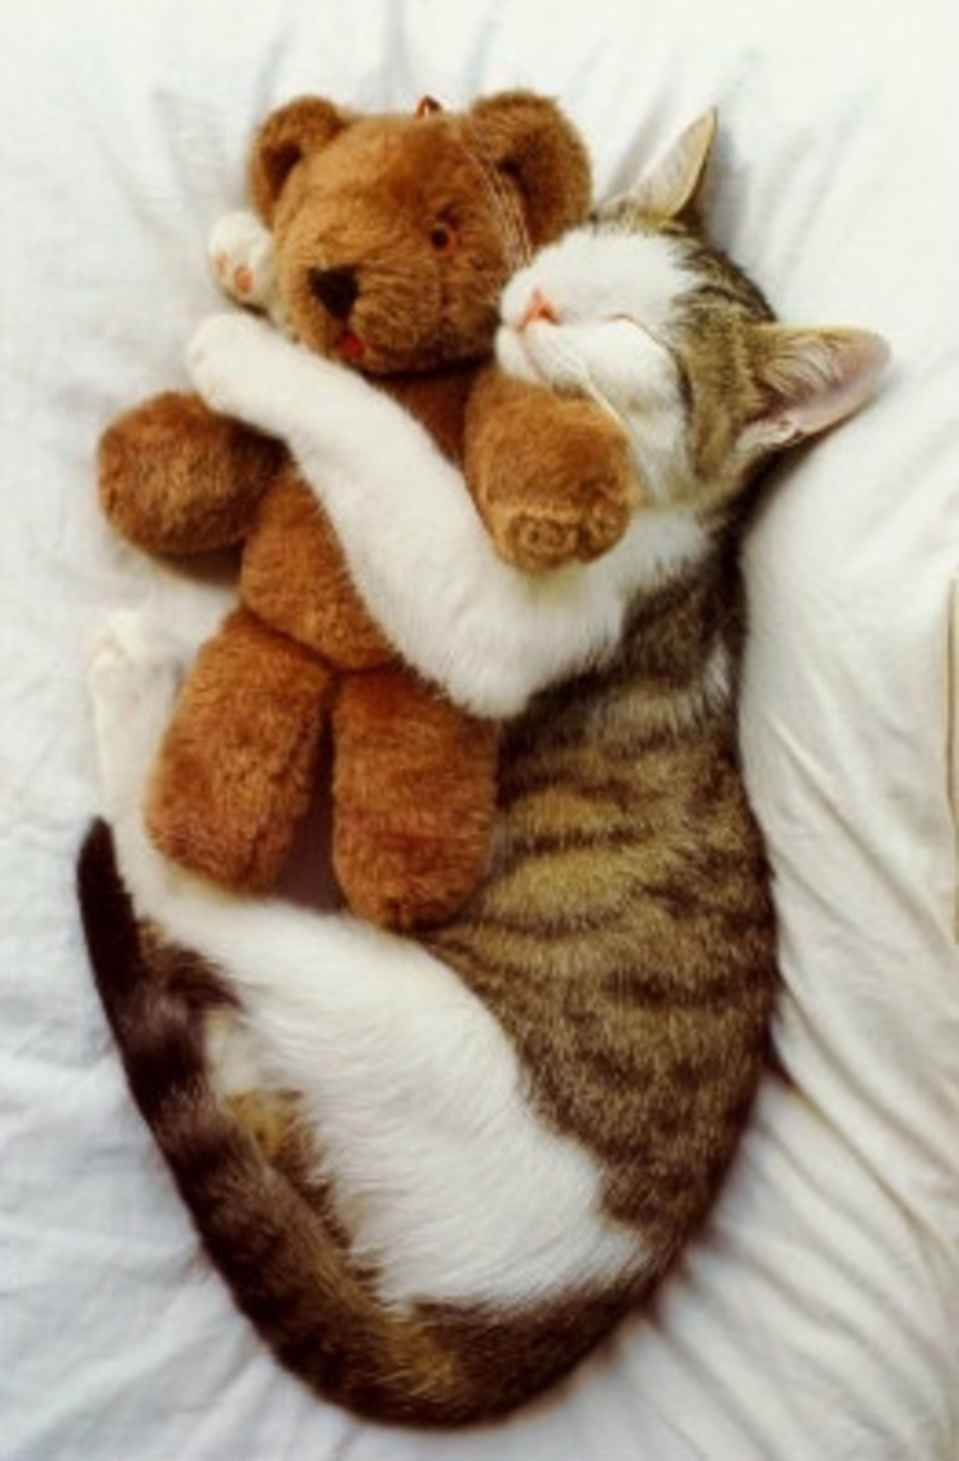 21 Adorable Cats Who Just Want A Hug Cute Animals Kittens Cutest Cat Sleeping